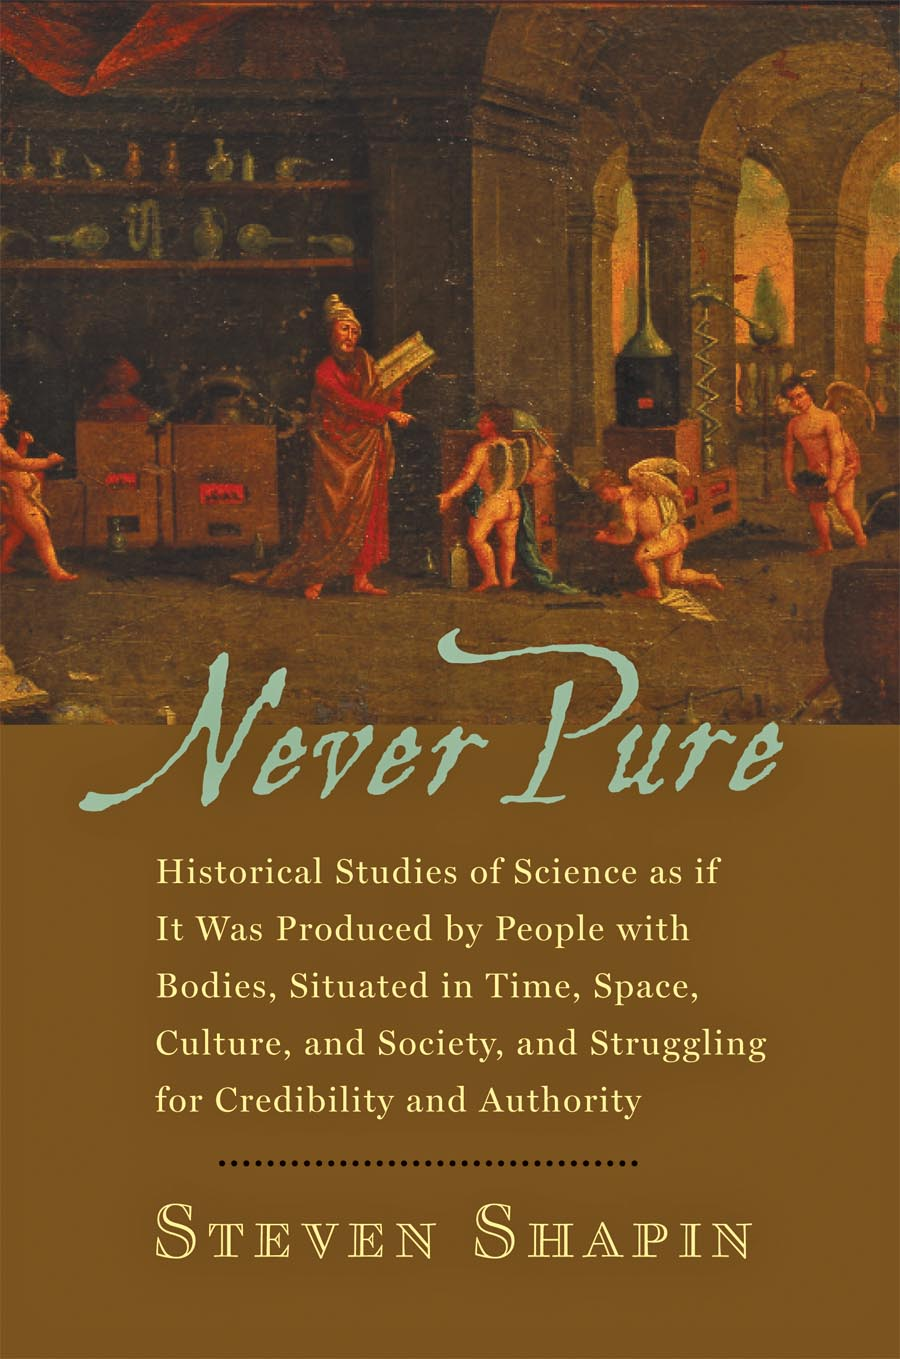 Never Pure – Historical Studies of Science as if It Was Produced by People with Bodies, Situated in Time, Space, Culture, and Society, and Struggling themes in greek society and culture